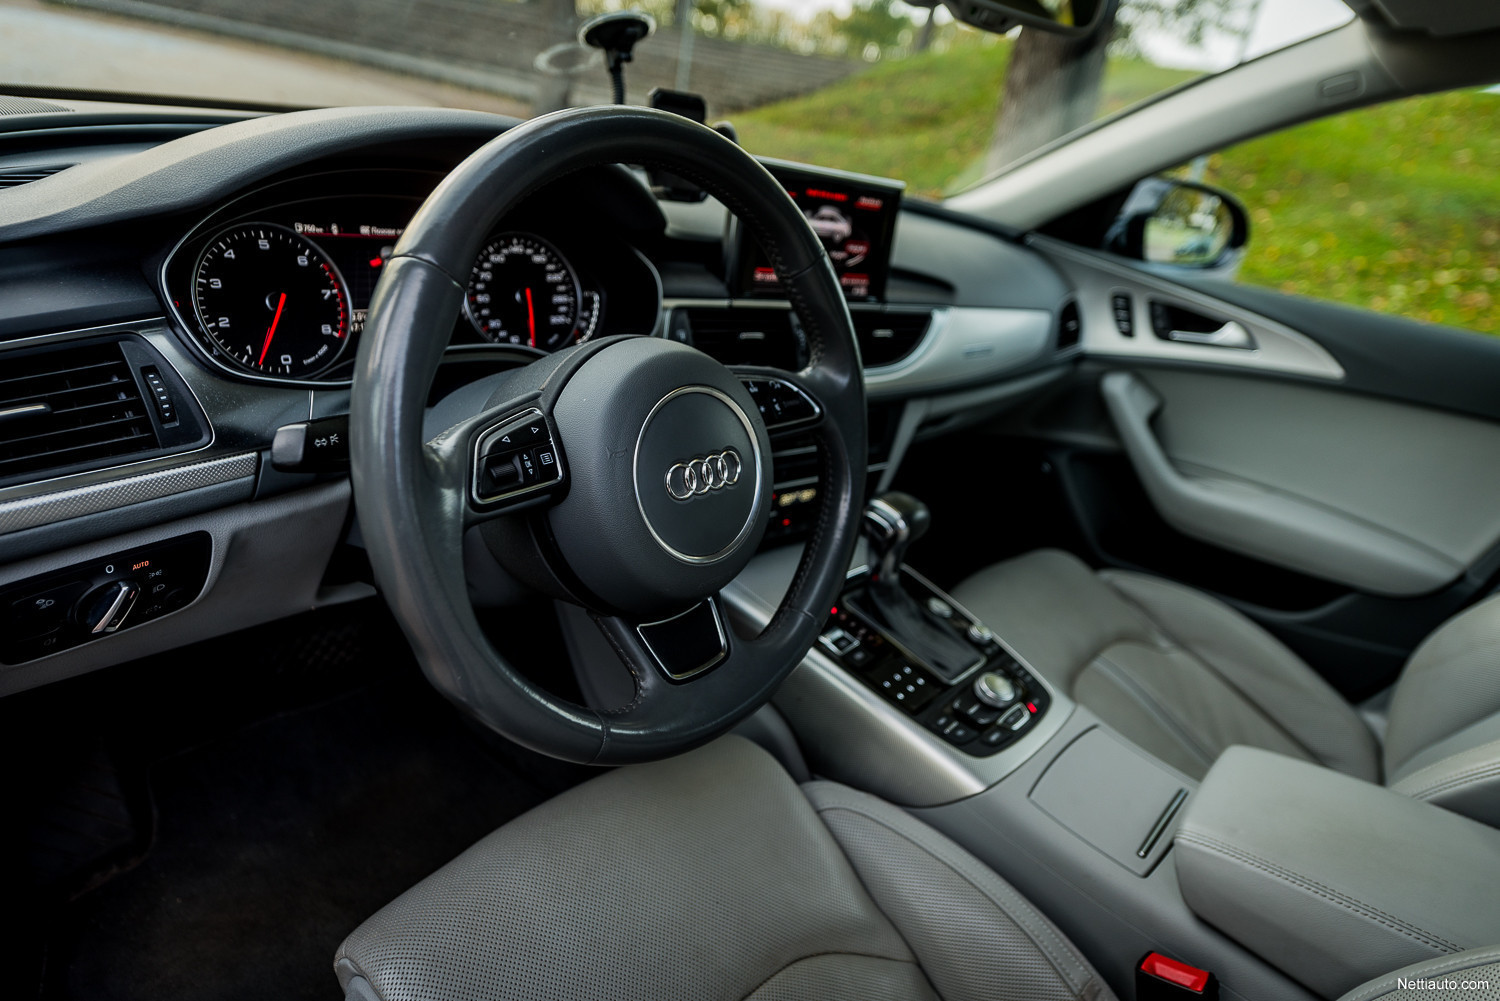 Add to Compare. Enlarge image. Audi A6